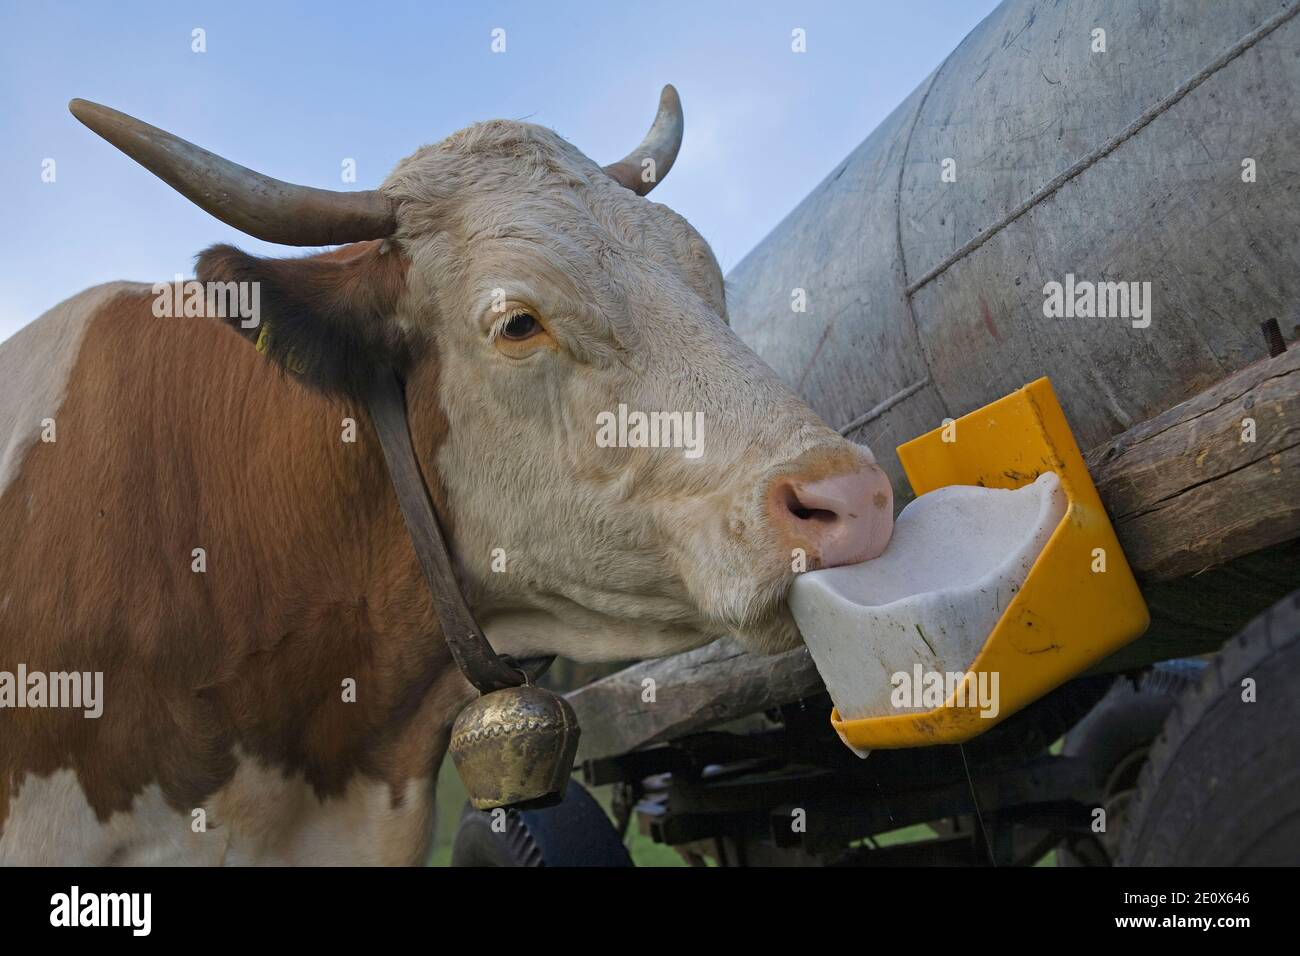 Salt Lickstone On The Water Barrel, The Cow Enjoys This Special Treat Stock Photo